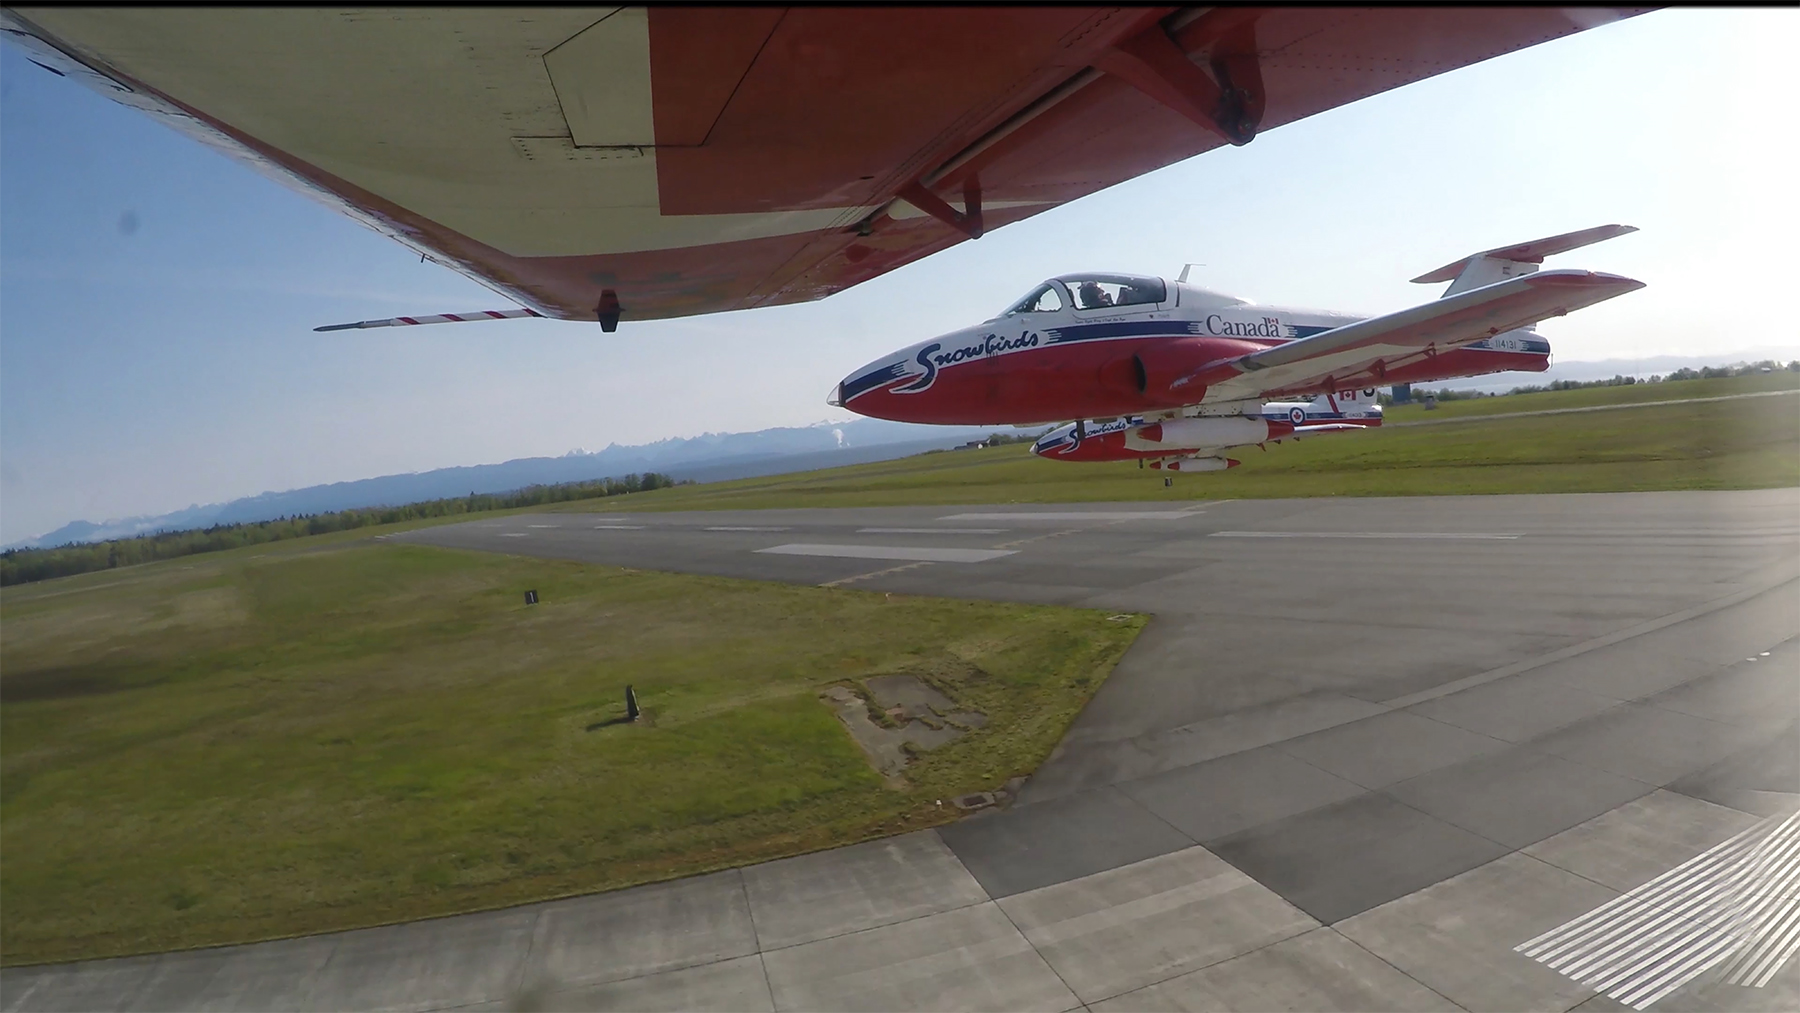 In April 2015, the TankCam records a Snowbird off the starboard wing of the Team Lead's CT-114 Tutor jet aircraft. PHOTO: Snowbirds TankCam